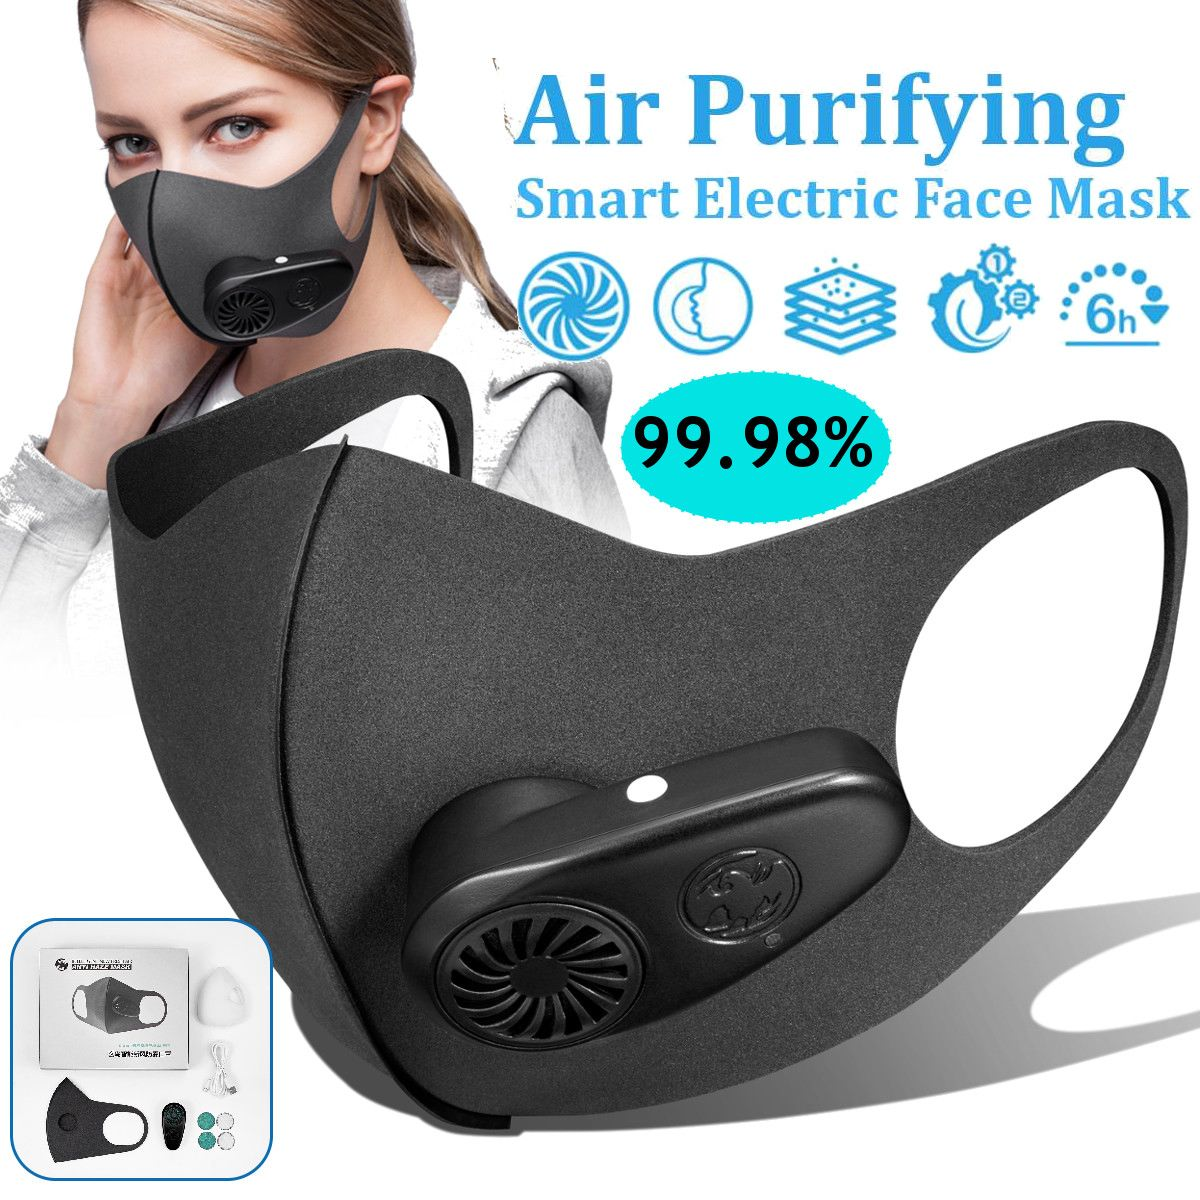 N95 Smart Electric Face Mask Air Purifying Anti Dust Pollution Fresh Air Supply Pm2.5 With Breathing Valve 5 Replaceable Filter